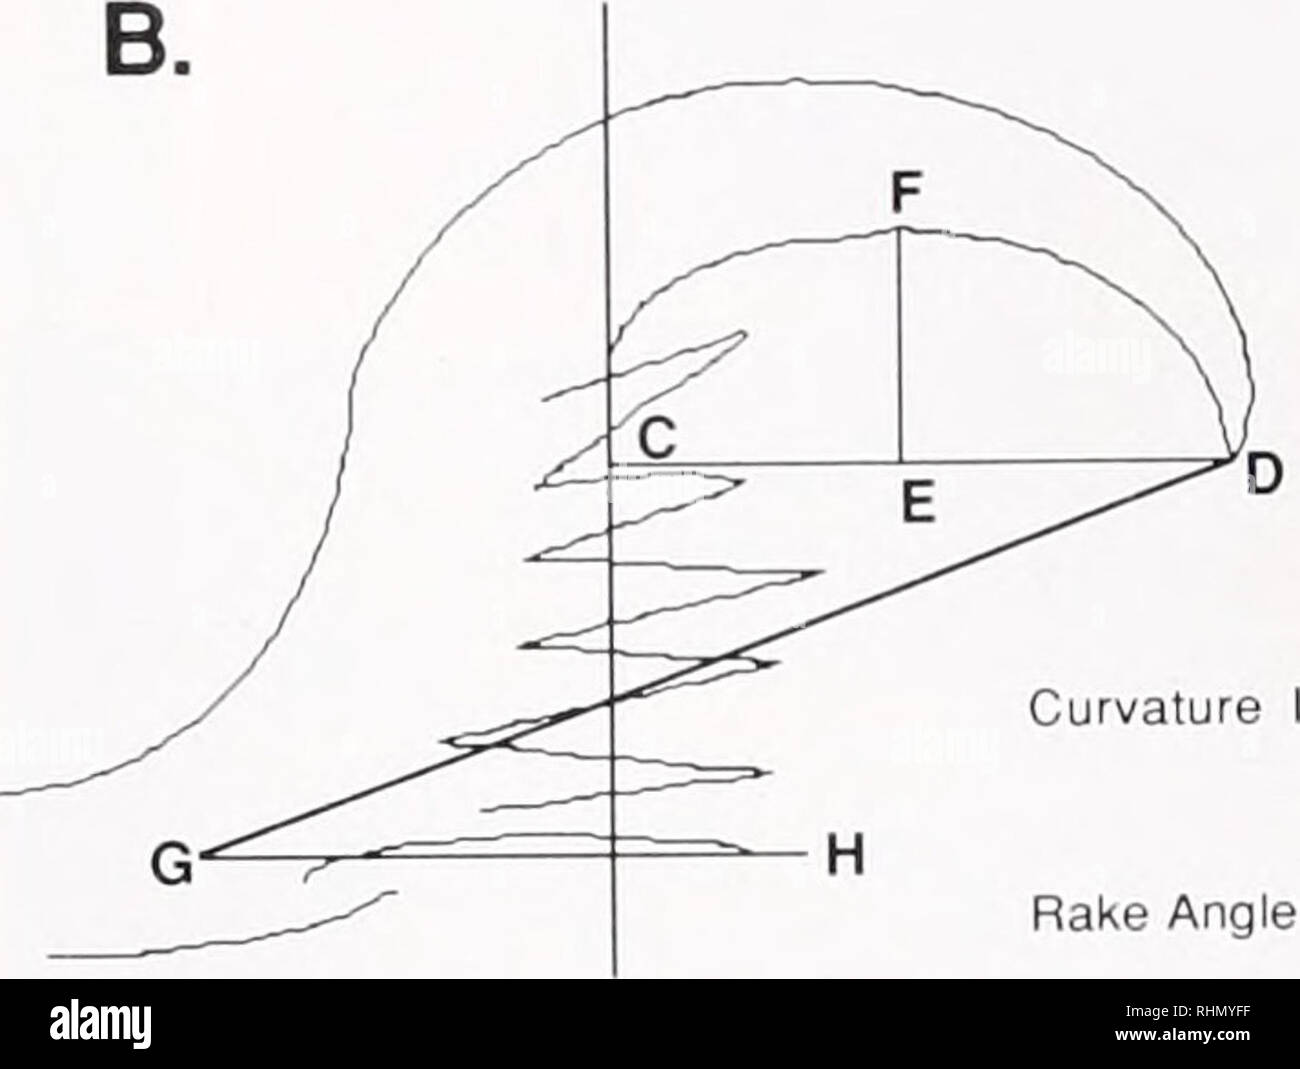 . The Biological bulletin. Biology; Zoology; Biology; Marine Biology. ndex = distance EF distance CD (Bloom. 1976) Rake Angle •- Figure 1. Drawings of a radula tooth from a (A.) dorsal and (B.I lateral perspective. Schematics show the measurements made to quantity radular structure. (WR = width of radula, Wr = width of rachidian tooth, Lr = length of rachidian tooth, d = denticles.) differences in radular structure existed among the nudi- branchs (Harris, 1985). Data were In (x + 1) and square root (x + 0.5) transformed to correct for non-normality and heteroscedastic variances (Zar, 1984). Fe - Stock Image